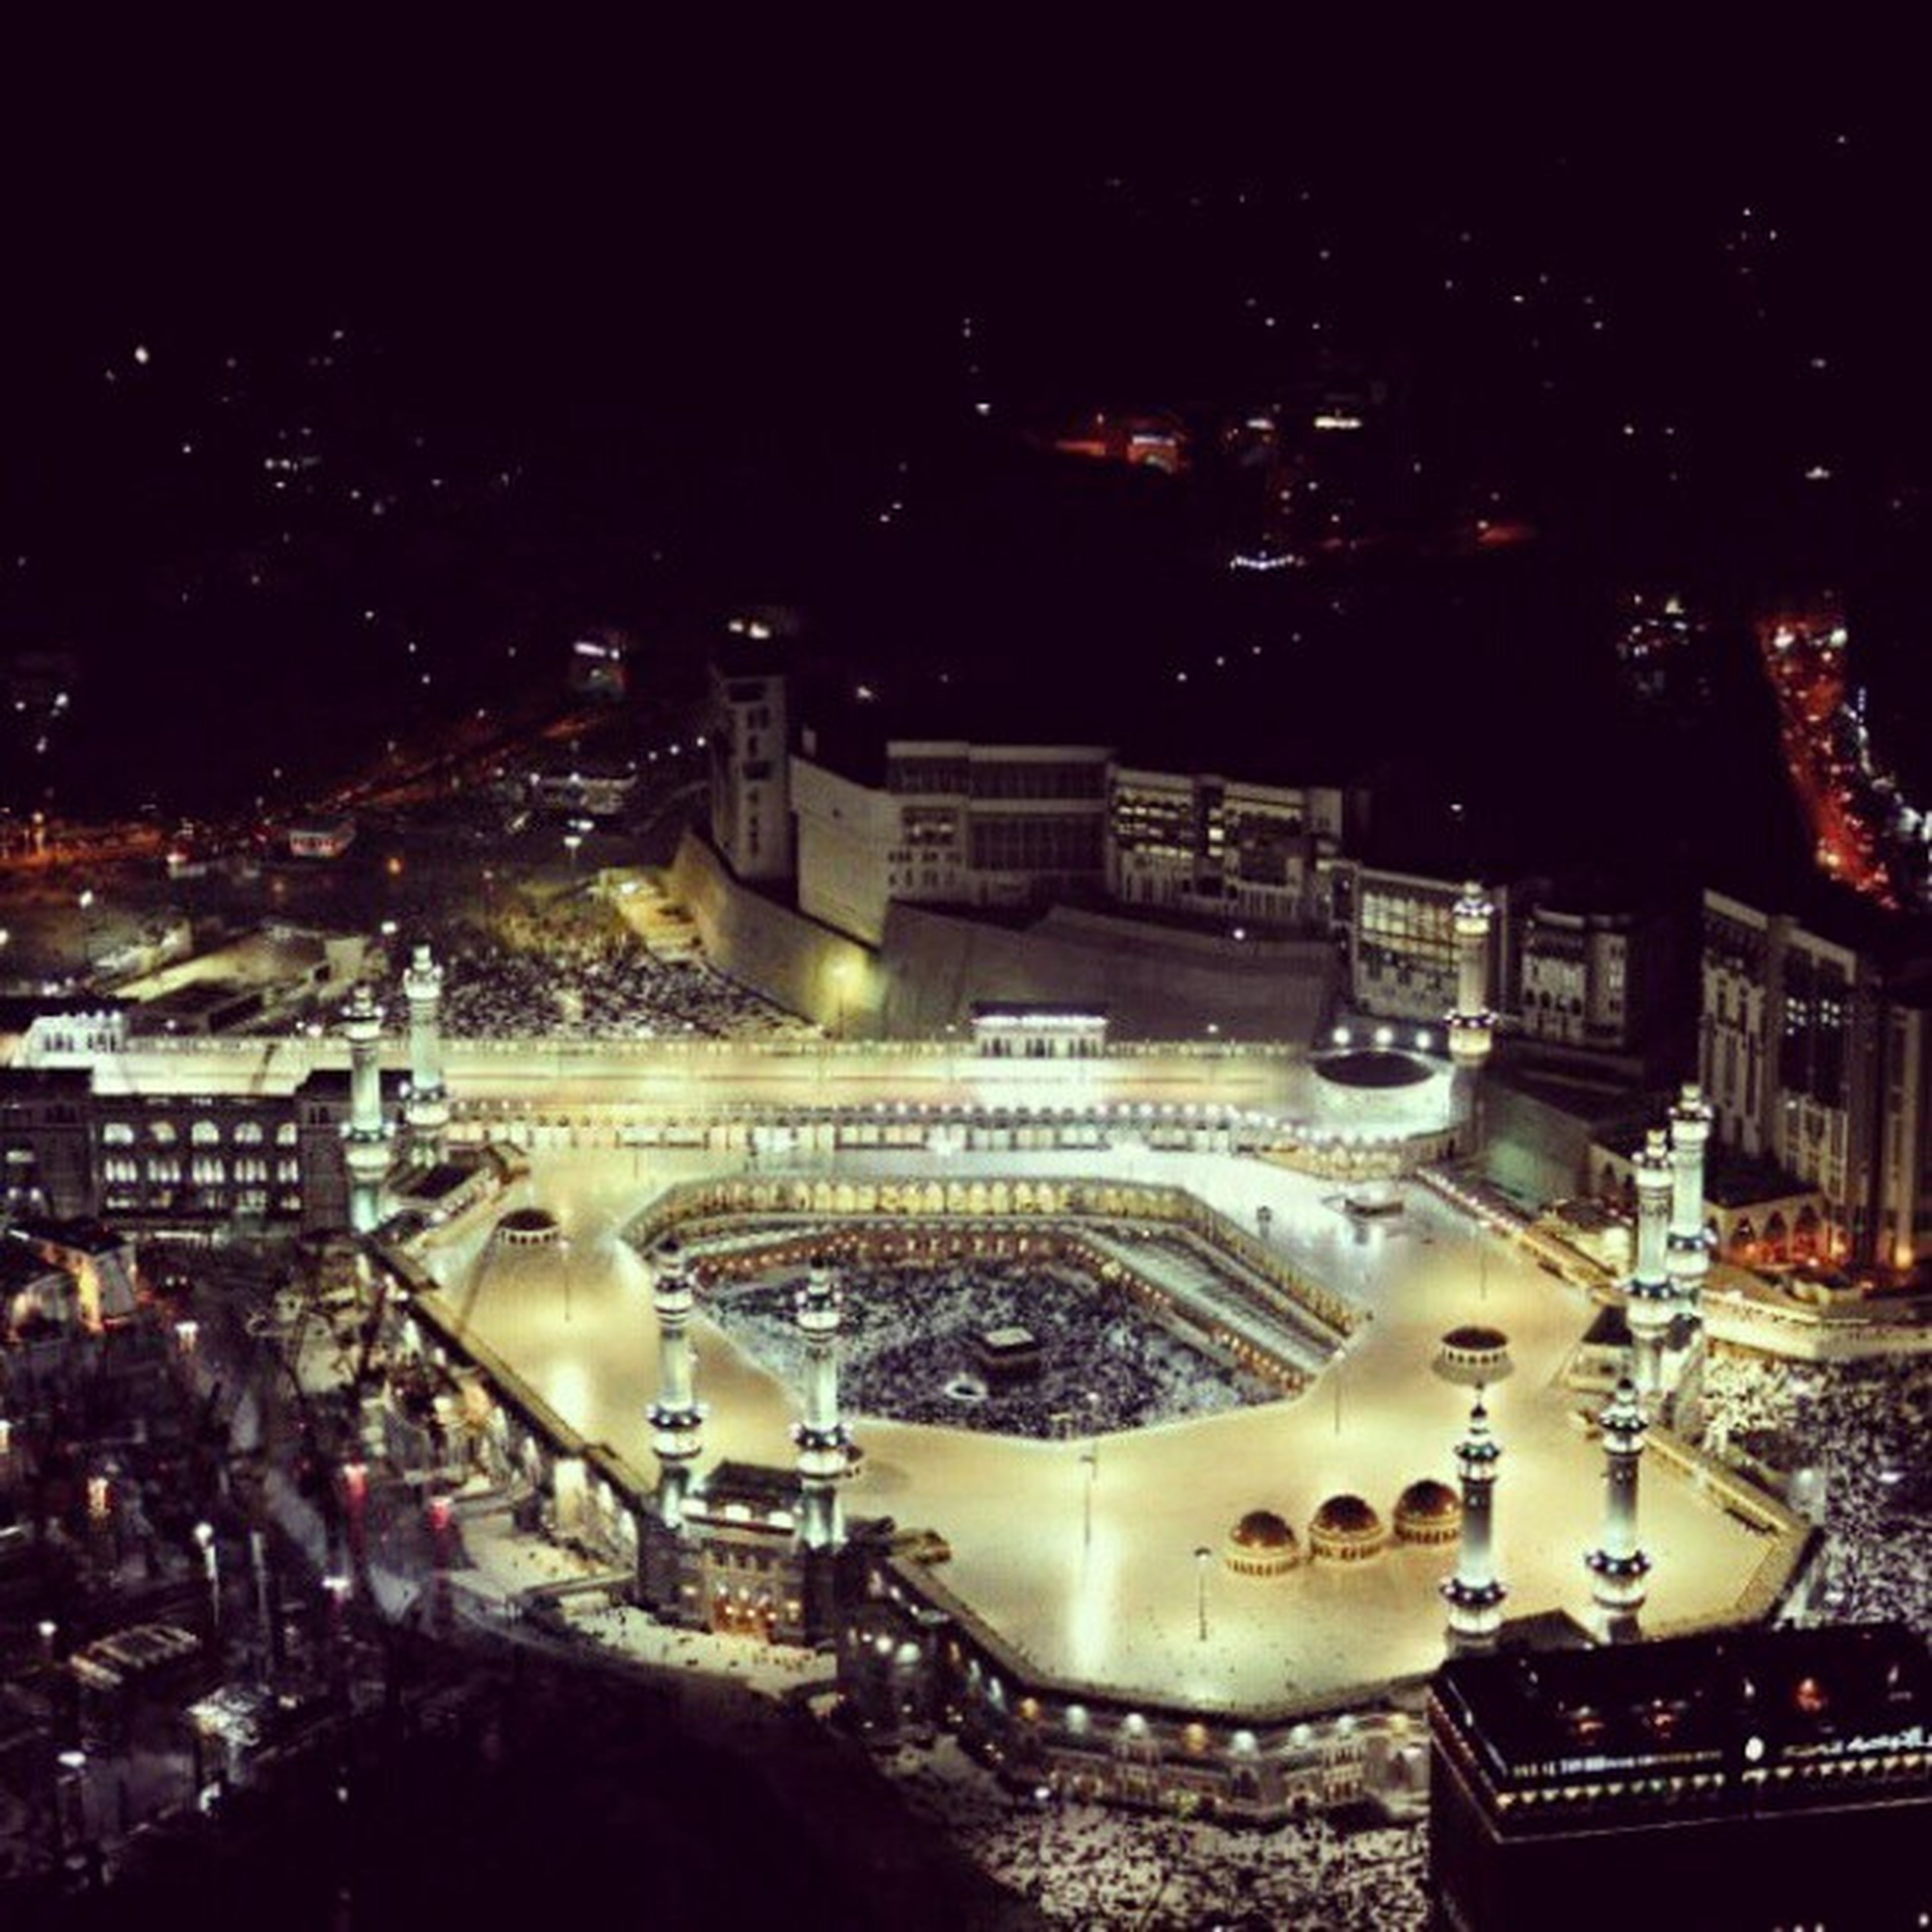 illuminated, city, night, cityscape, architecture, high angle view, building exterior, built structure, crowded, city life, travel destinations, outdoors, capital cities, no people, residential building, residential district, elevated view, travel, aerial view